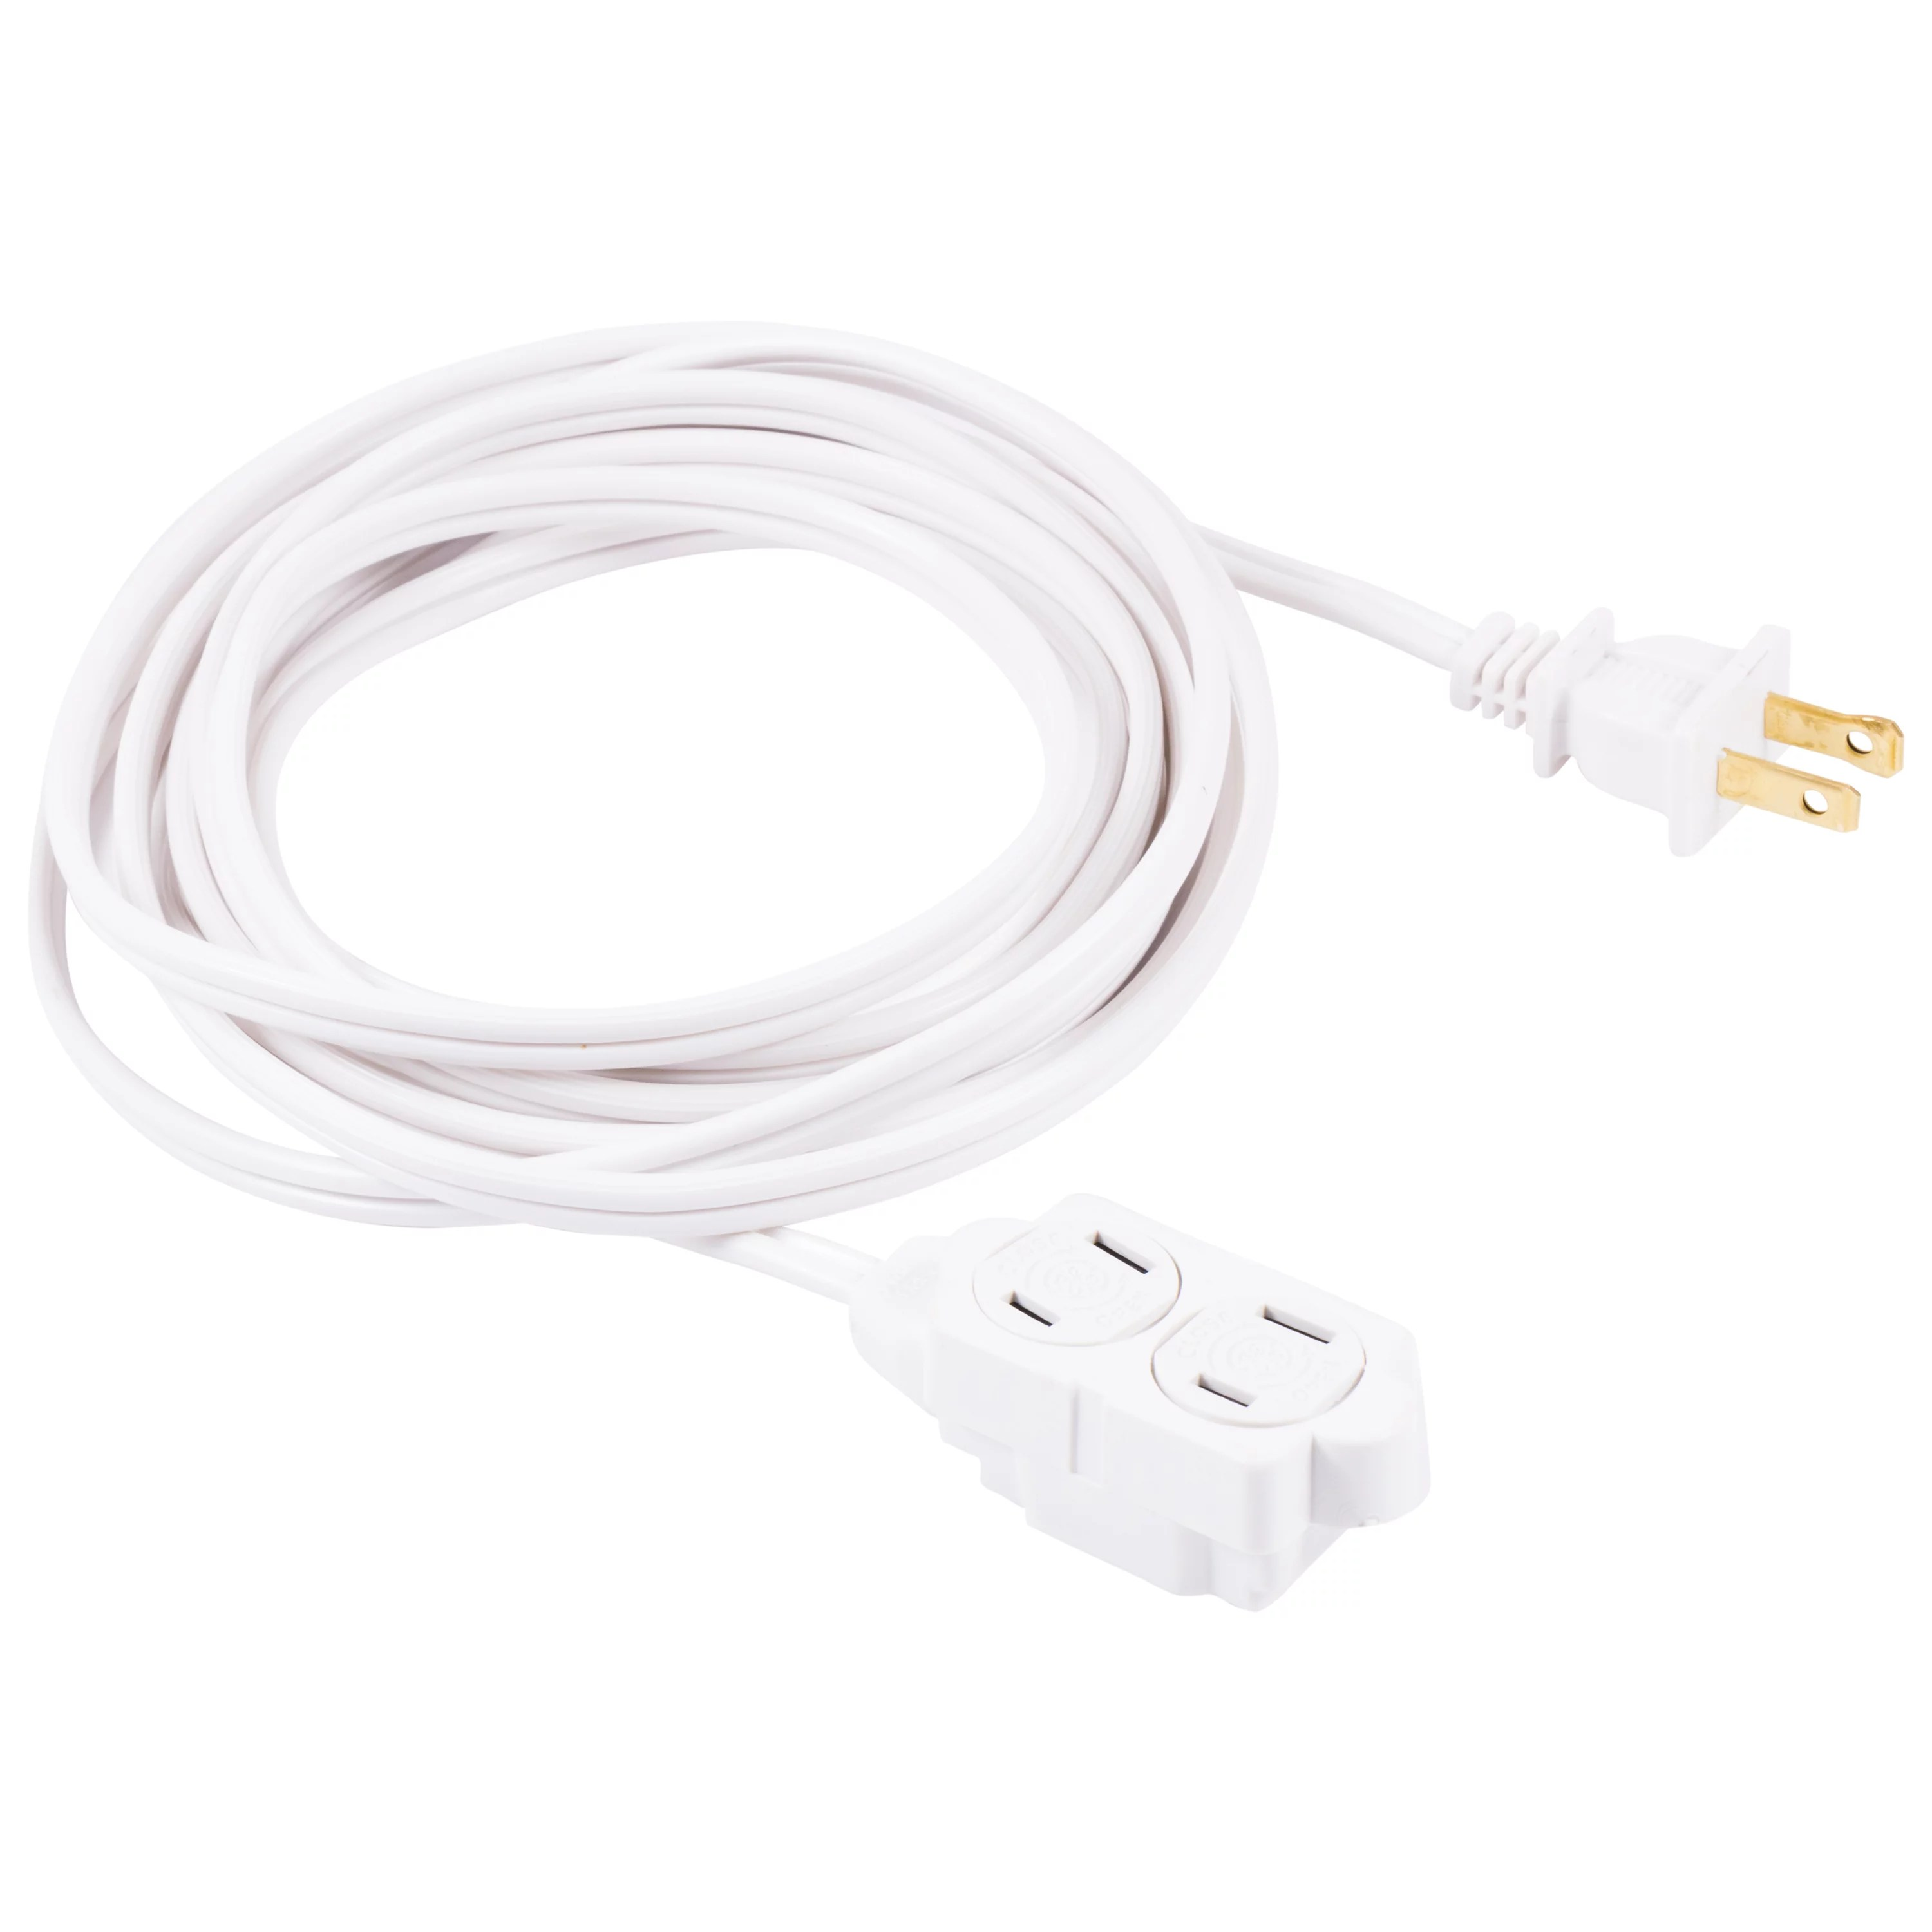 Ge 3 Outlet 12ft Indoor Extension Cord Safety Outlet